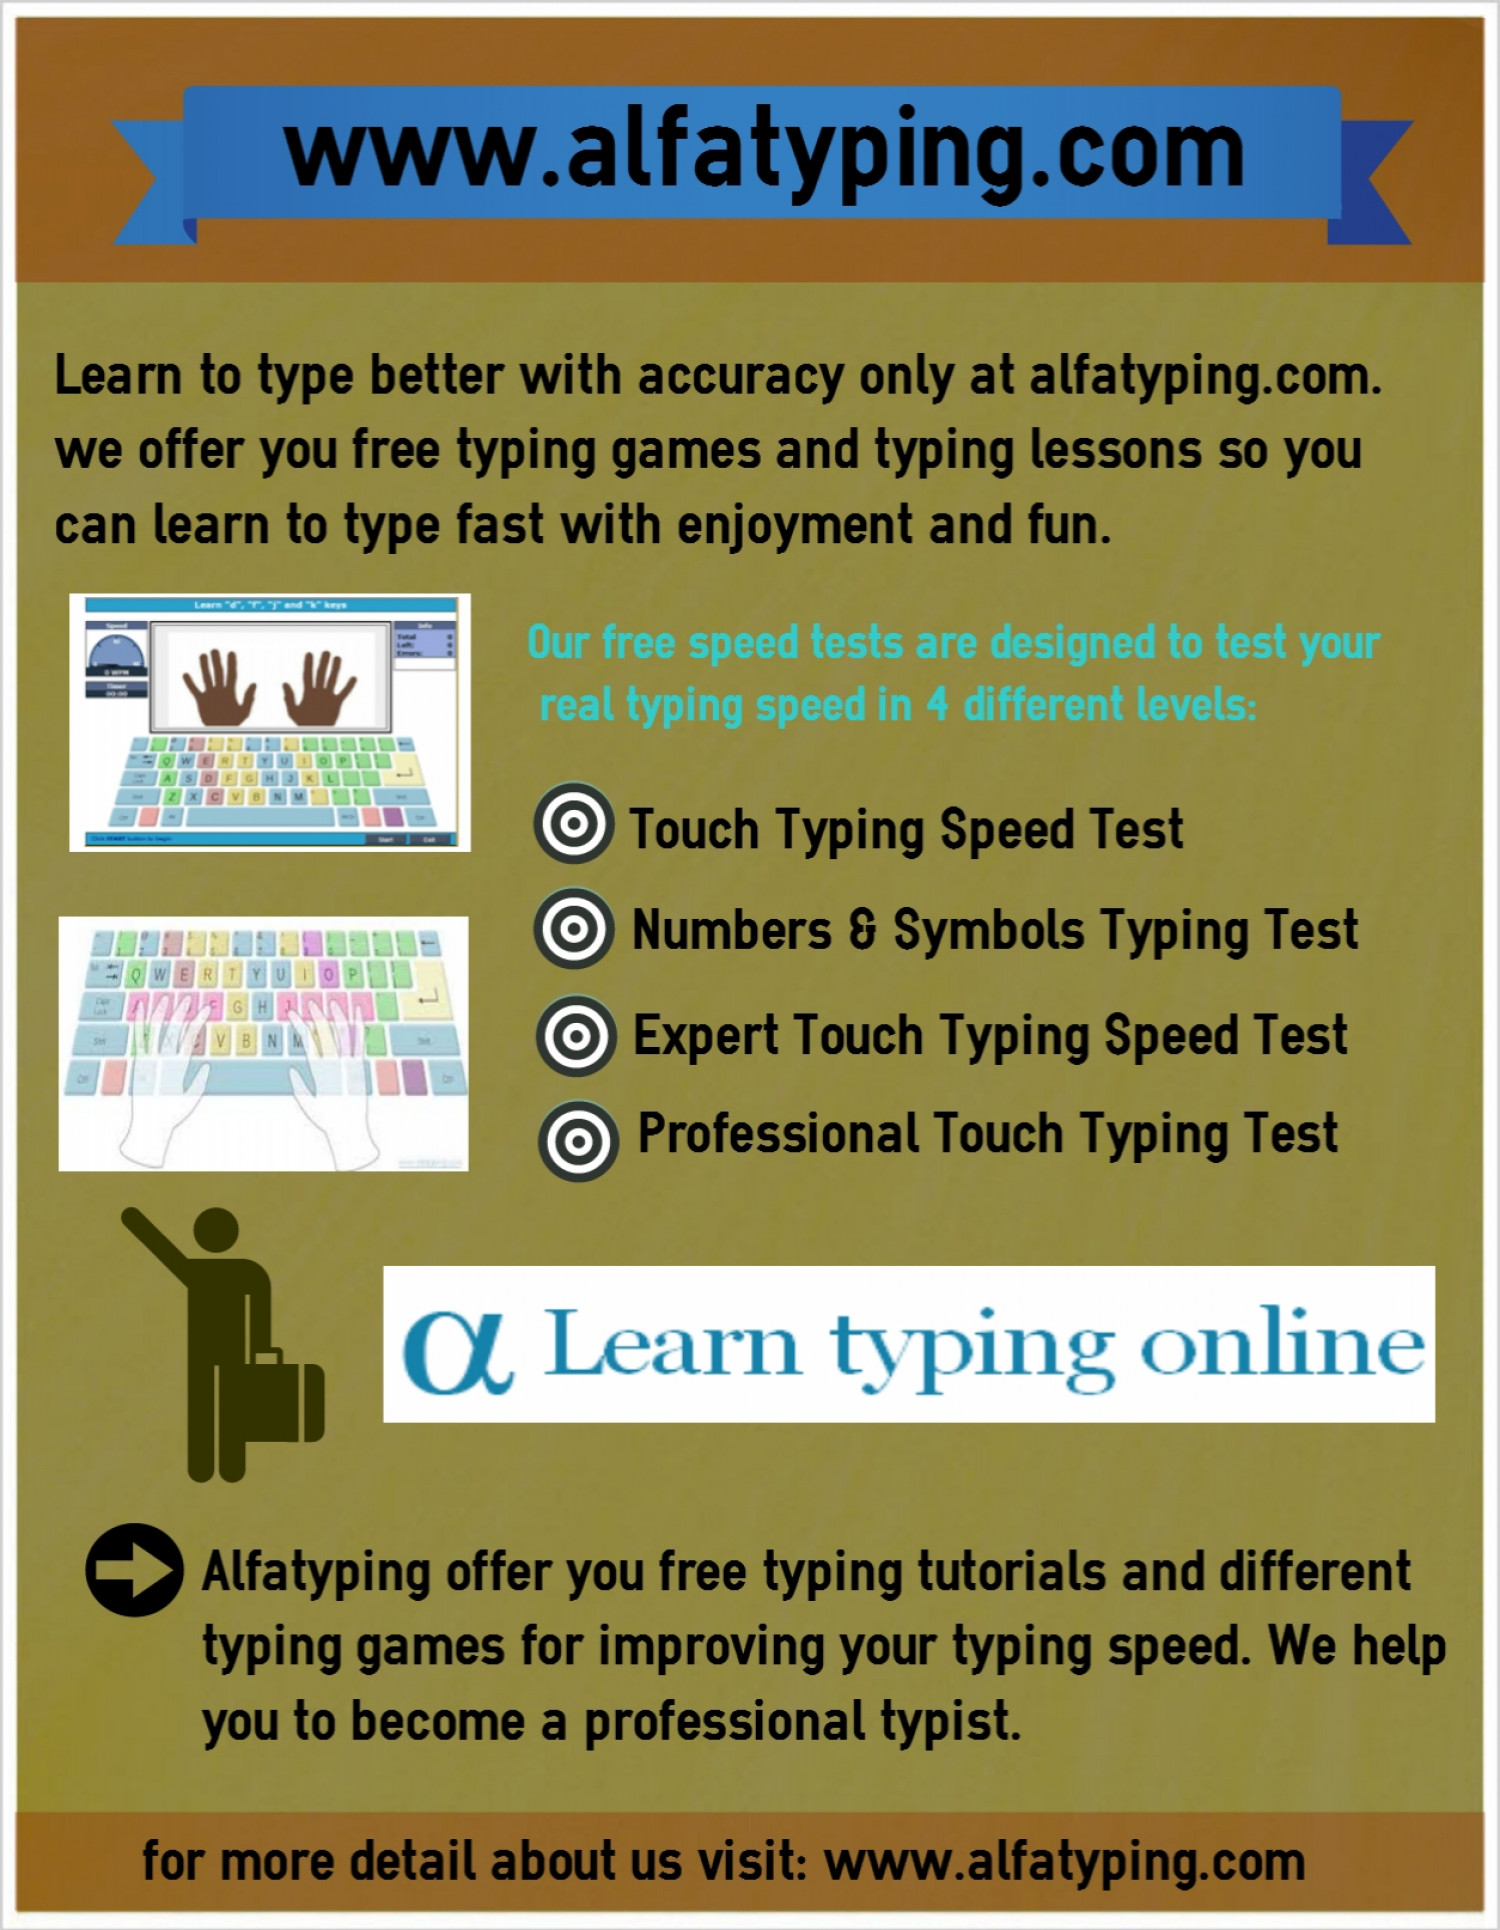 Worksheet Typeonline learn to type online and free typing test visual ly infographic